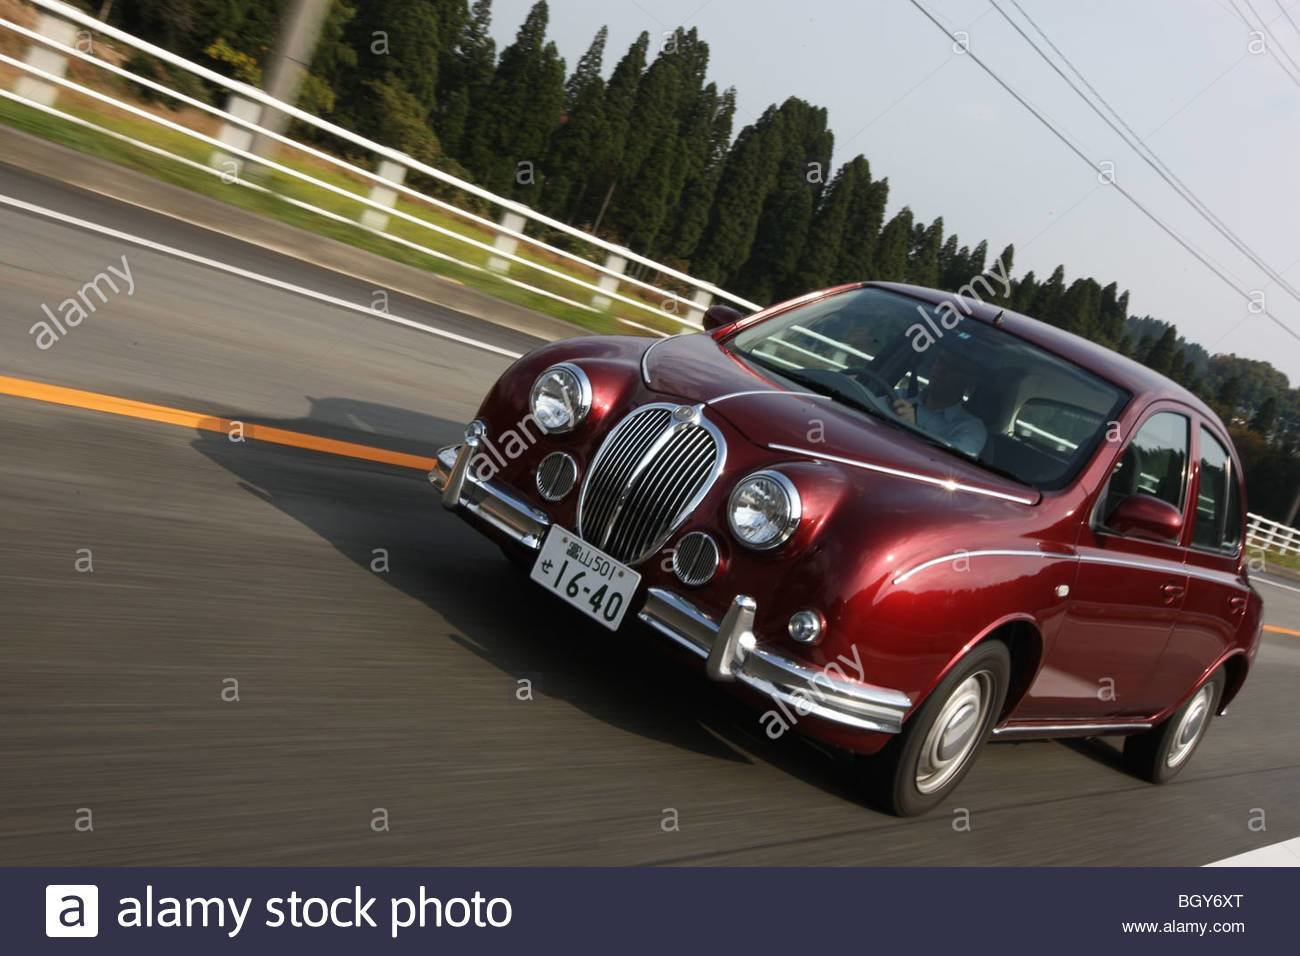 New Mitsuoka Viewt Stock Photos Mitsuoka Viewt Stock Images On This Month